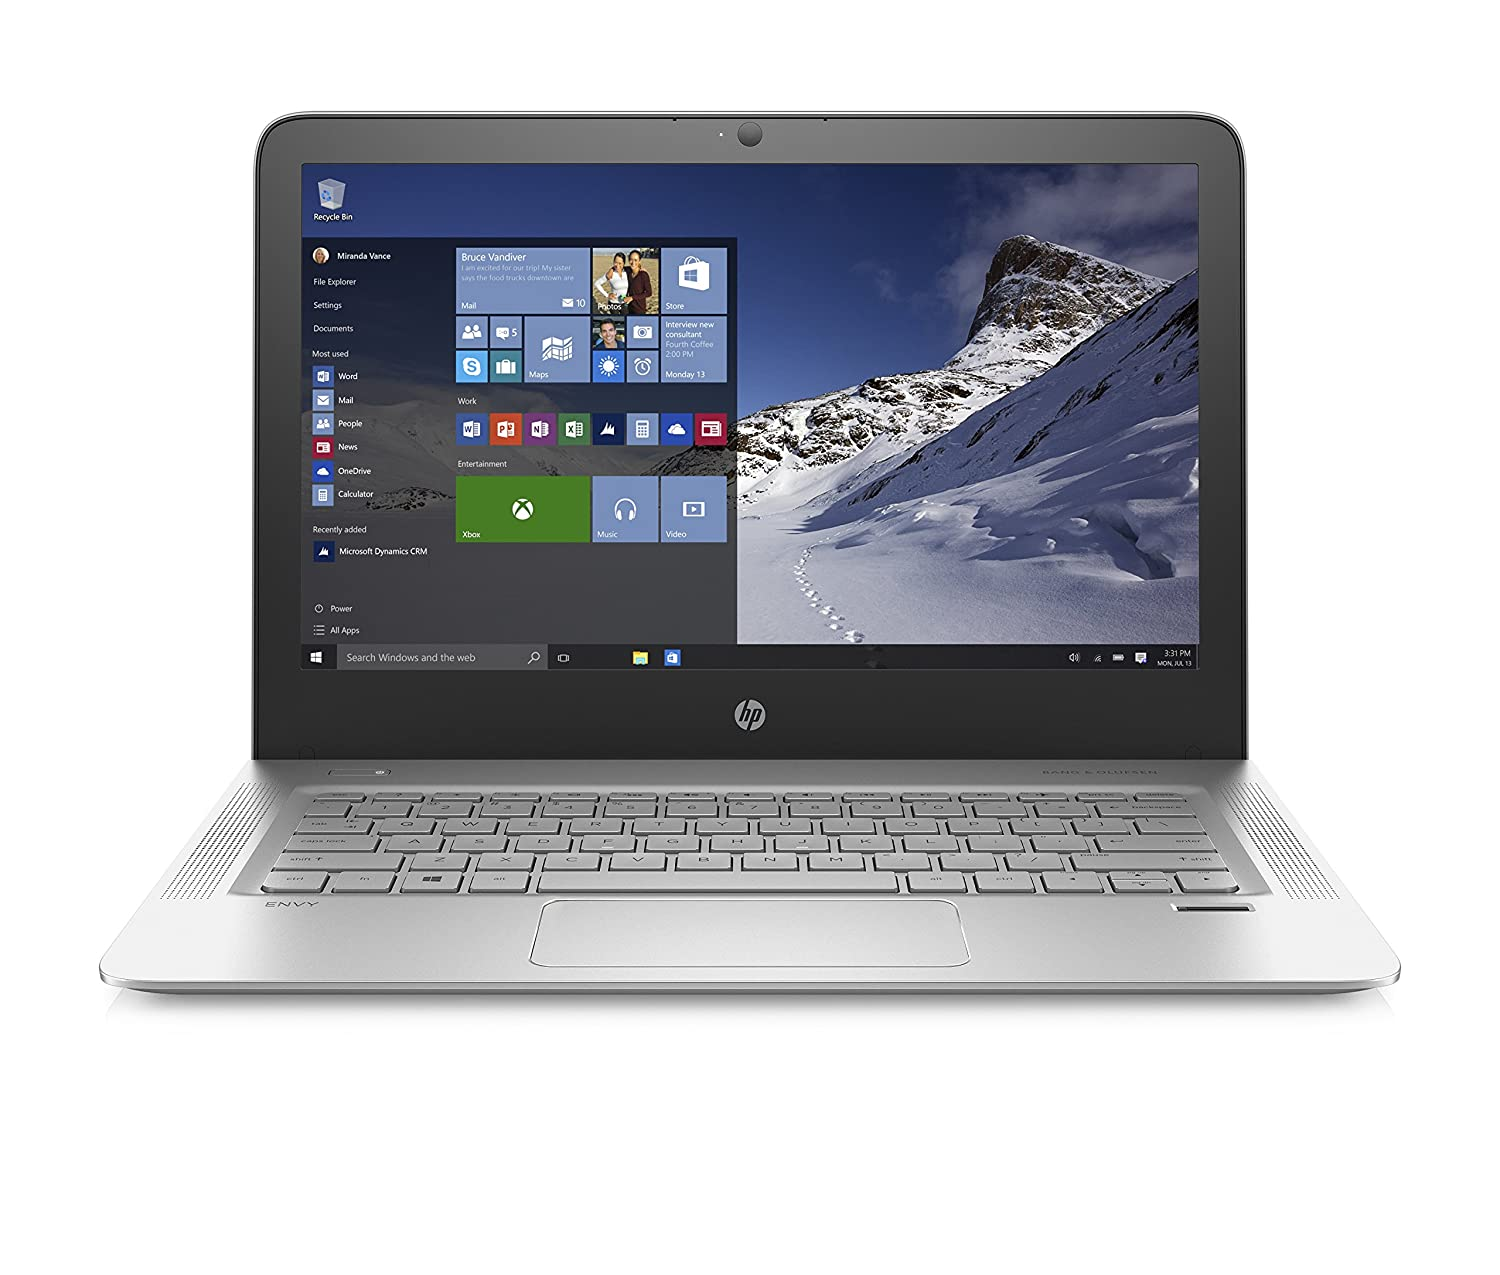 Amazon.com: HP ENVY 13-d010nr 13.3-Inch Laptop (Intel Core i5, 8 GB RAM,  128 GB SSD): Computers & Accessories